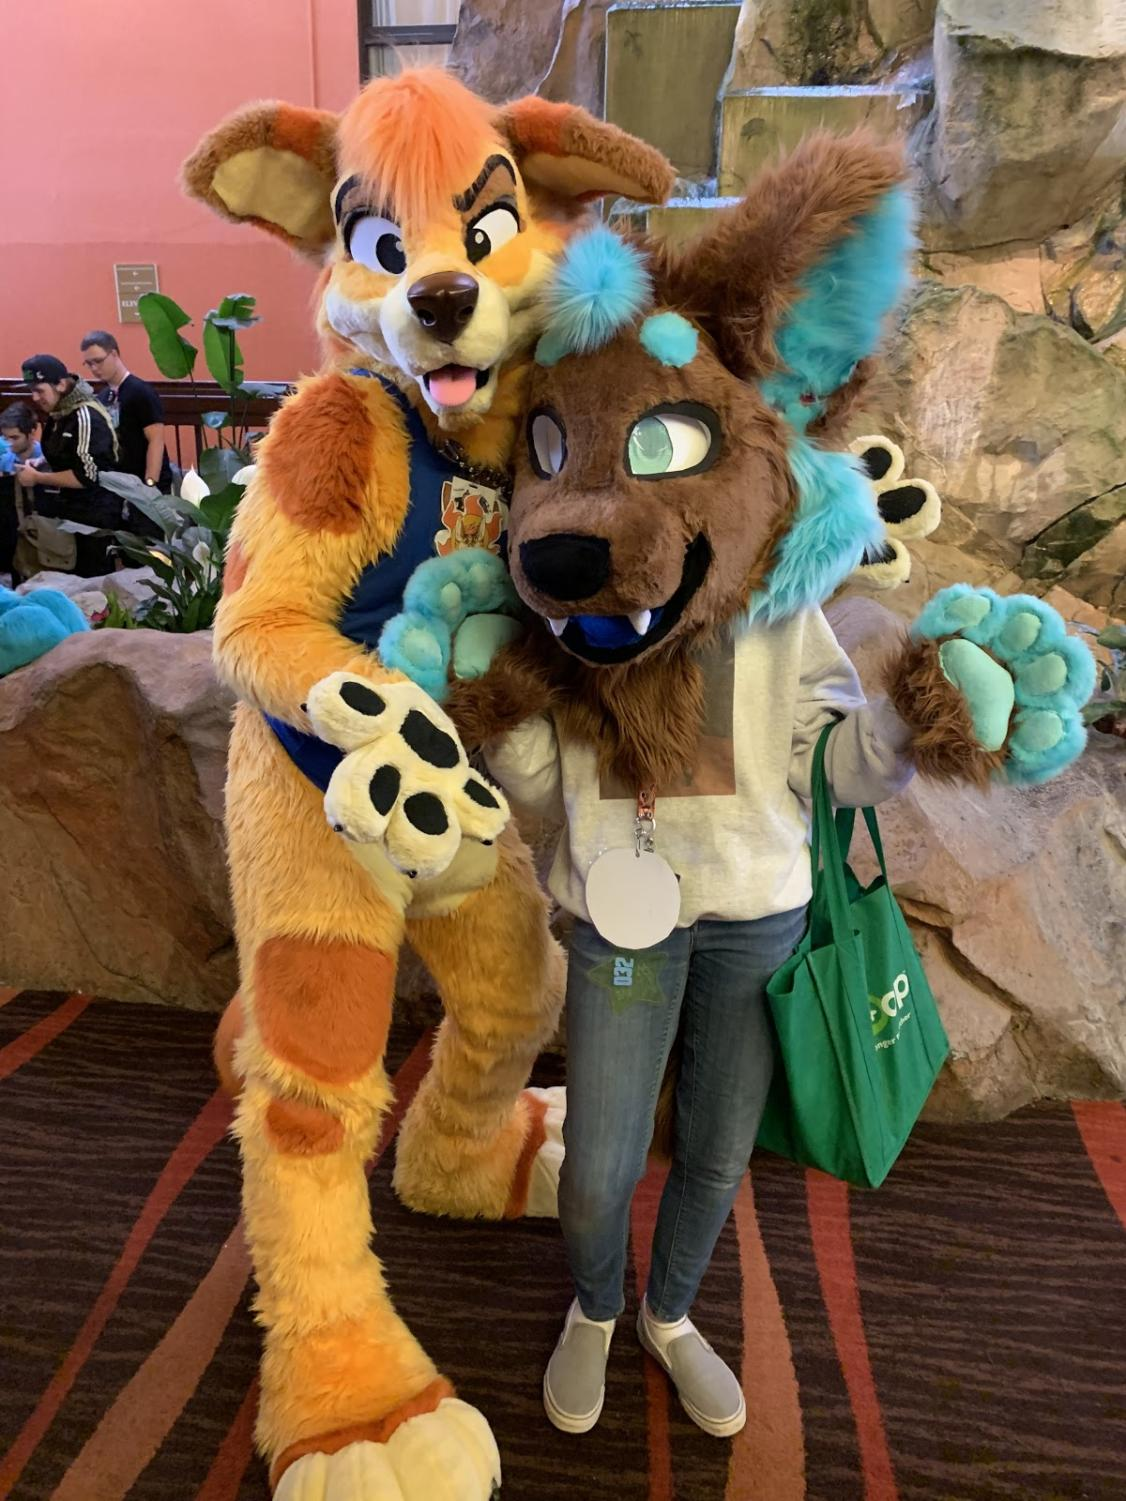 Liddle (right) and a friend (left) wear their fursuits.